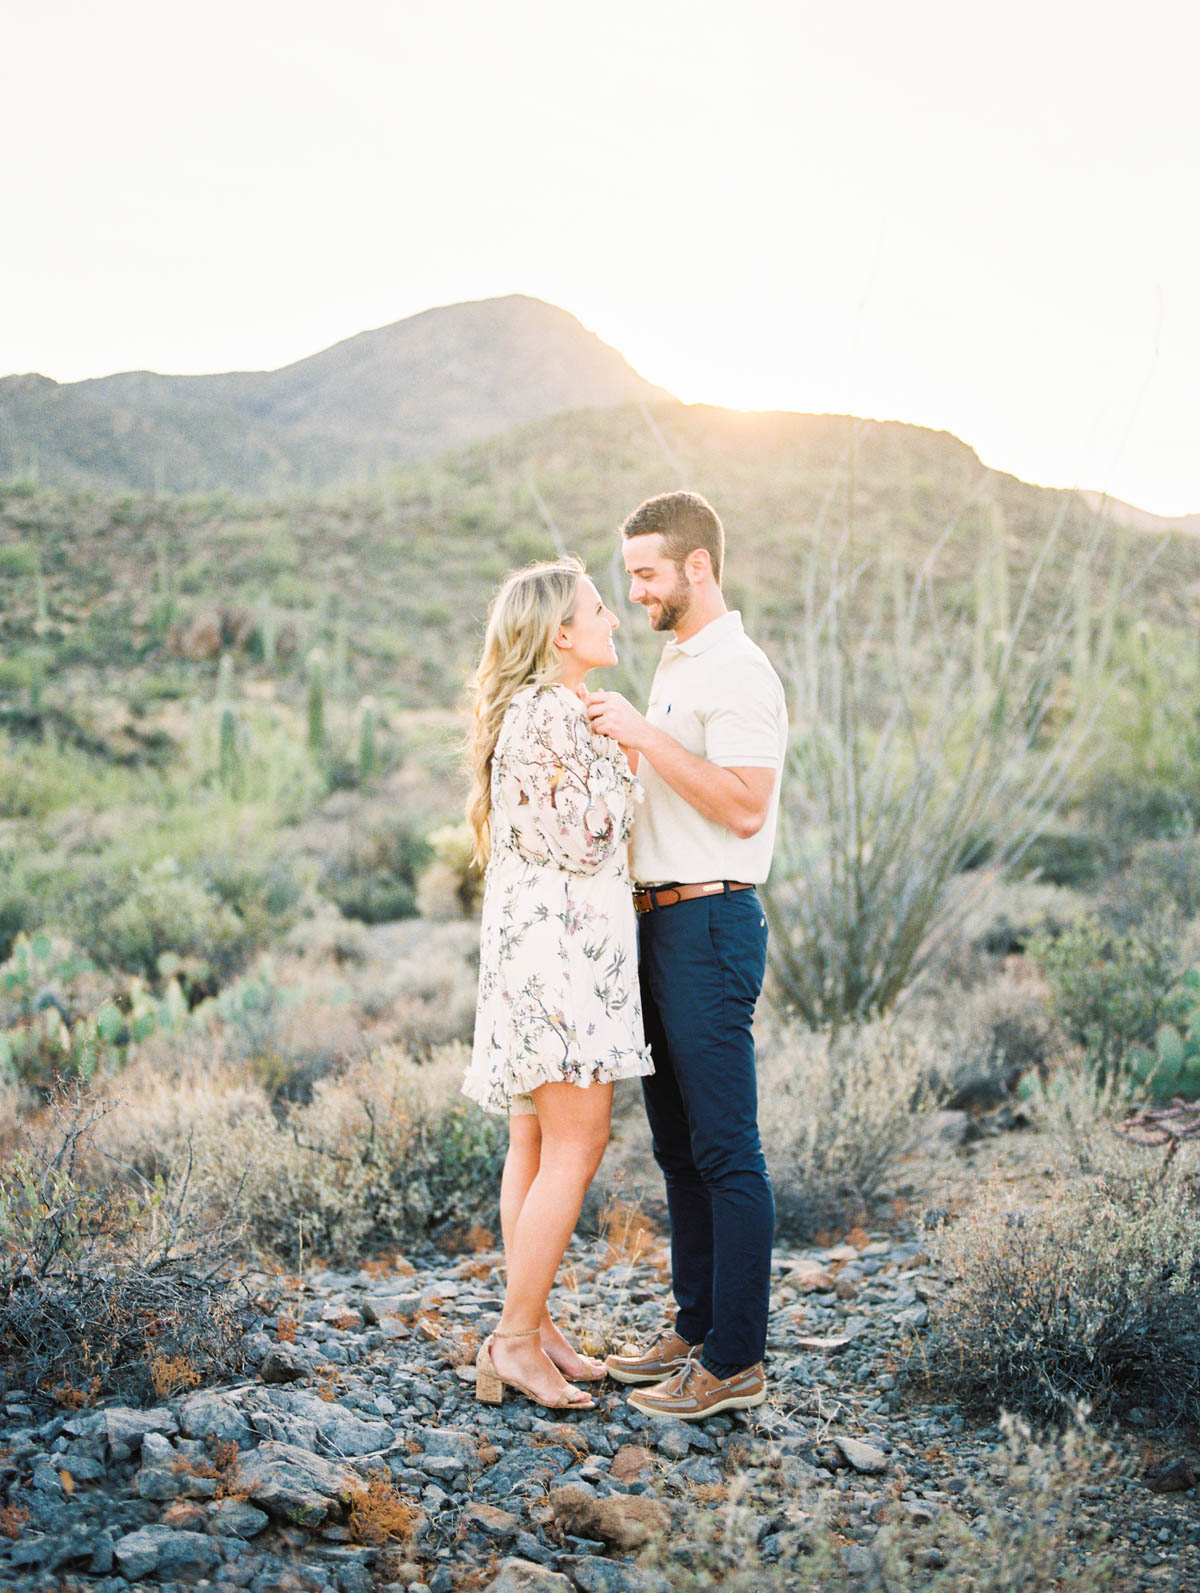 tucson-desert-engagement-session-49.jpg